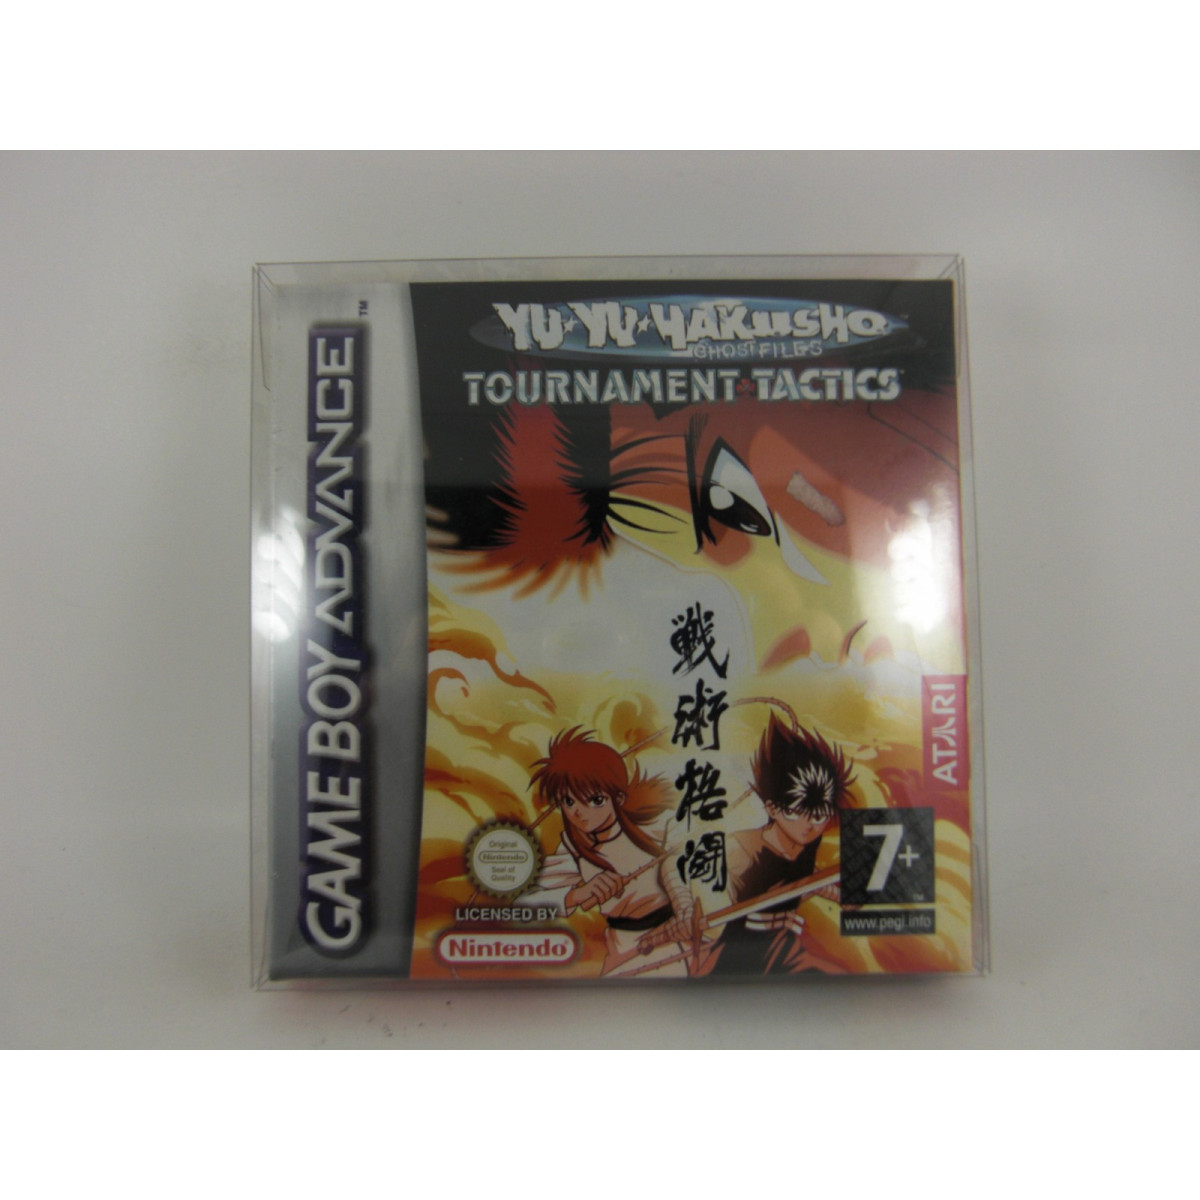 Game Boy Advance Comprar Yu Yu Hakusho Tournament Tactics